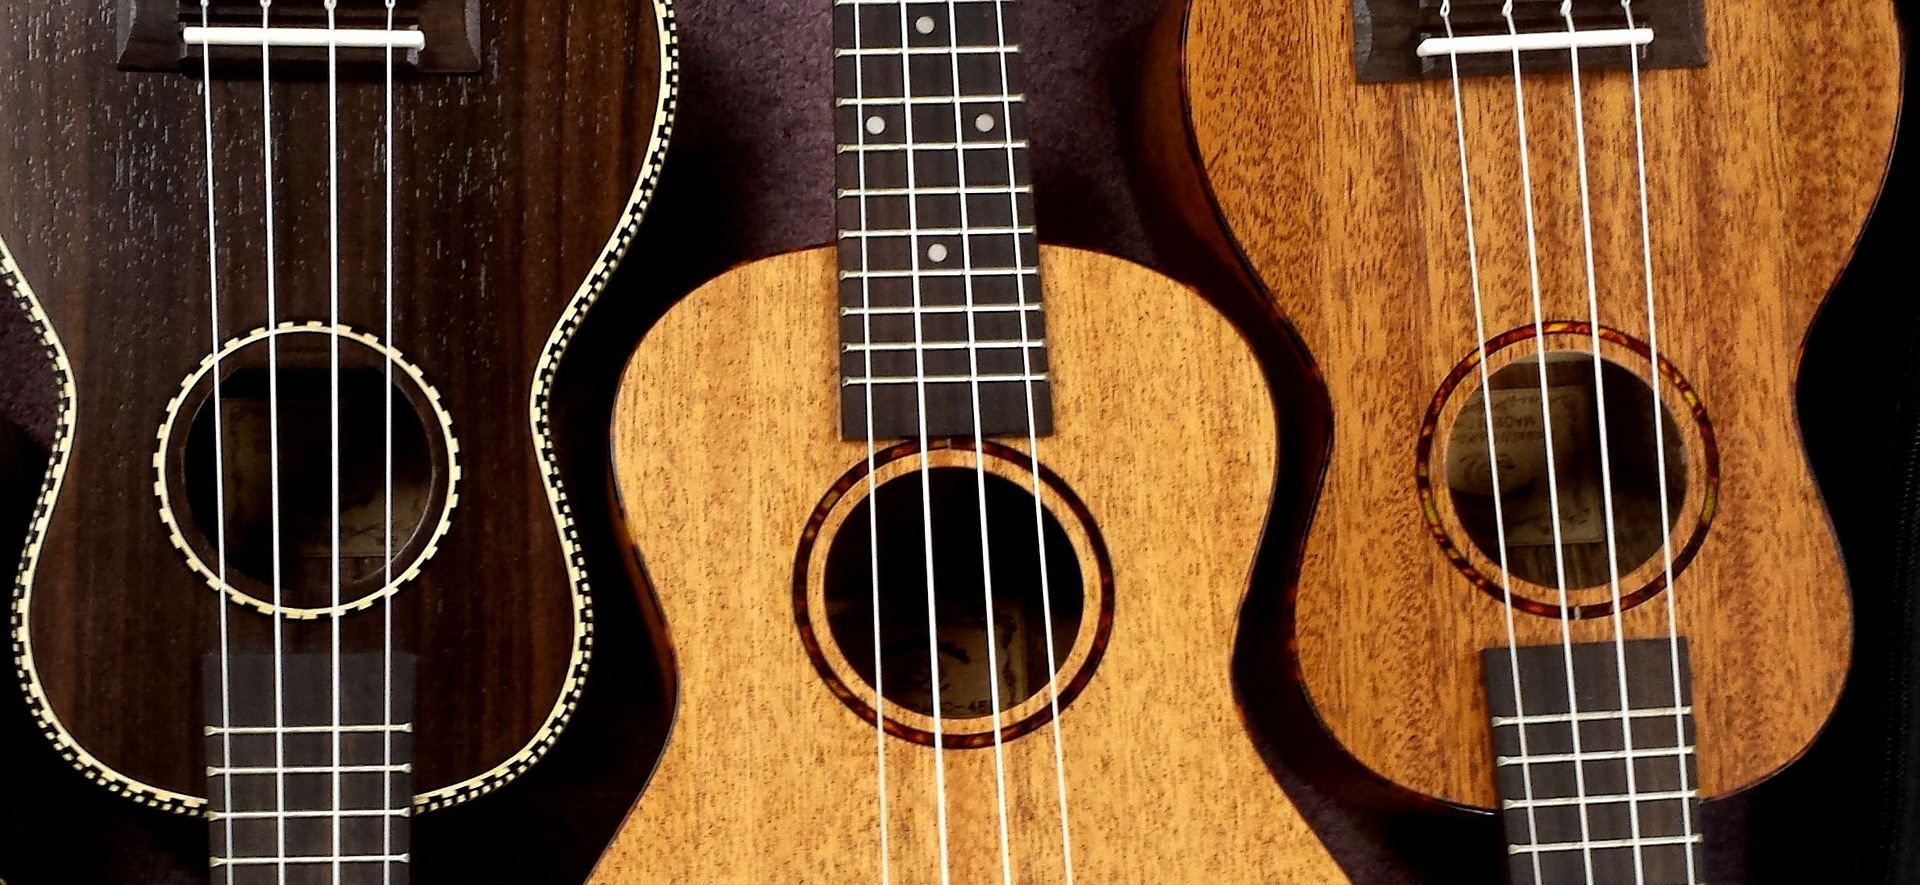 How to play ukulele chords: D major, D minor, and D7